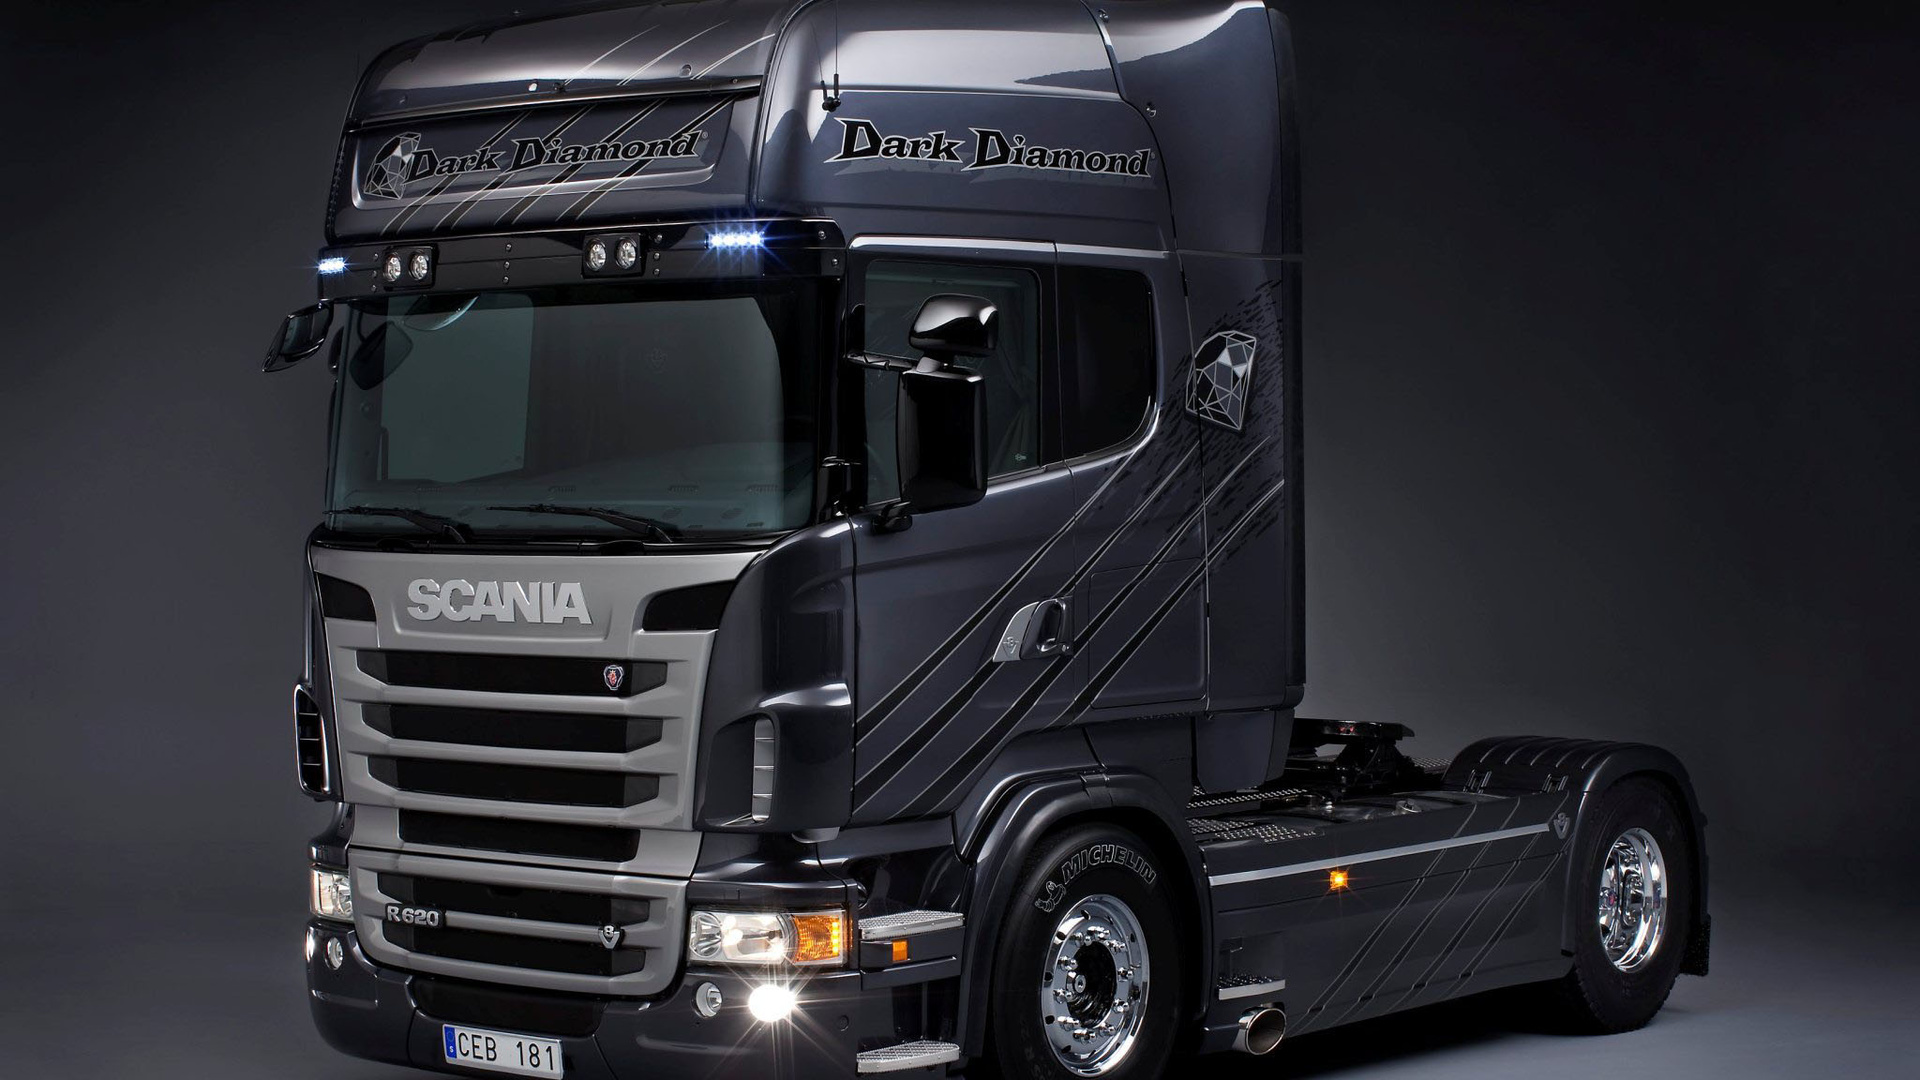 Wallpaper 1920x1080 Dark >> Download Wallpaper Scania Dark Diamond (1920x1080). The Wallpapers, photos